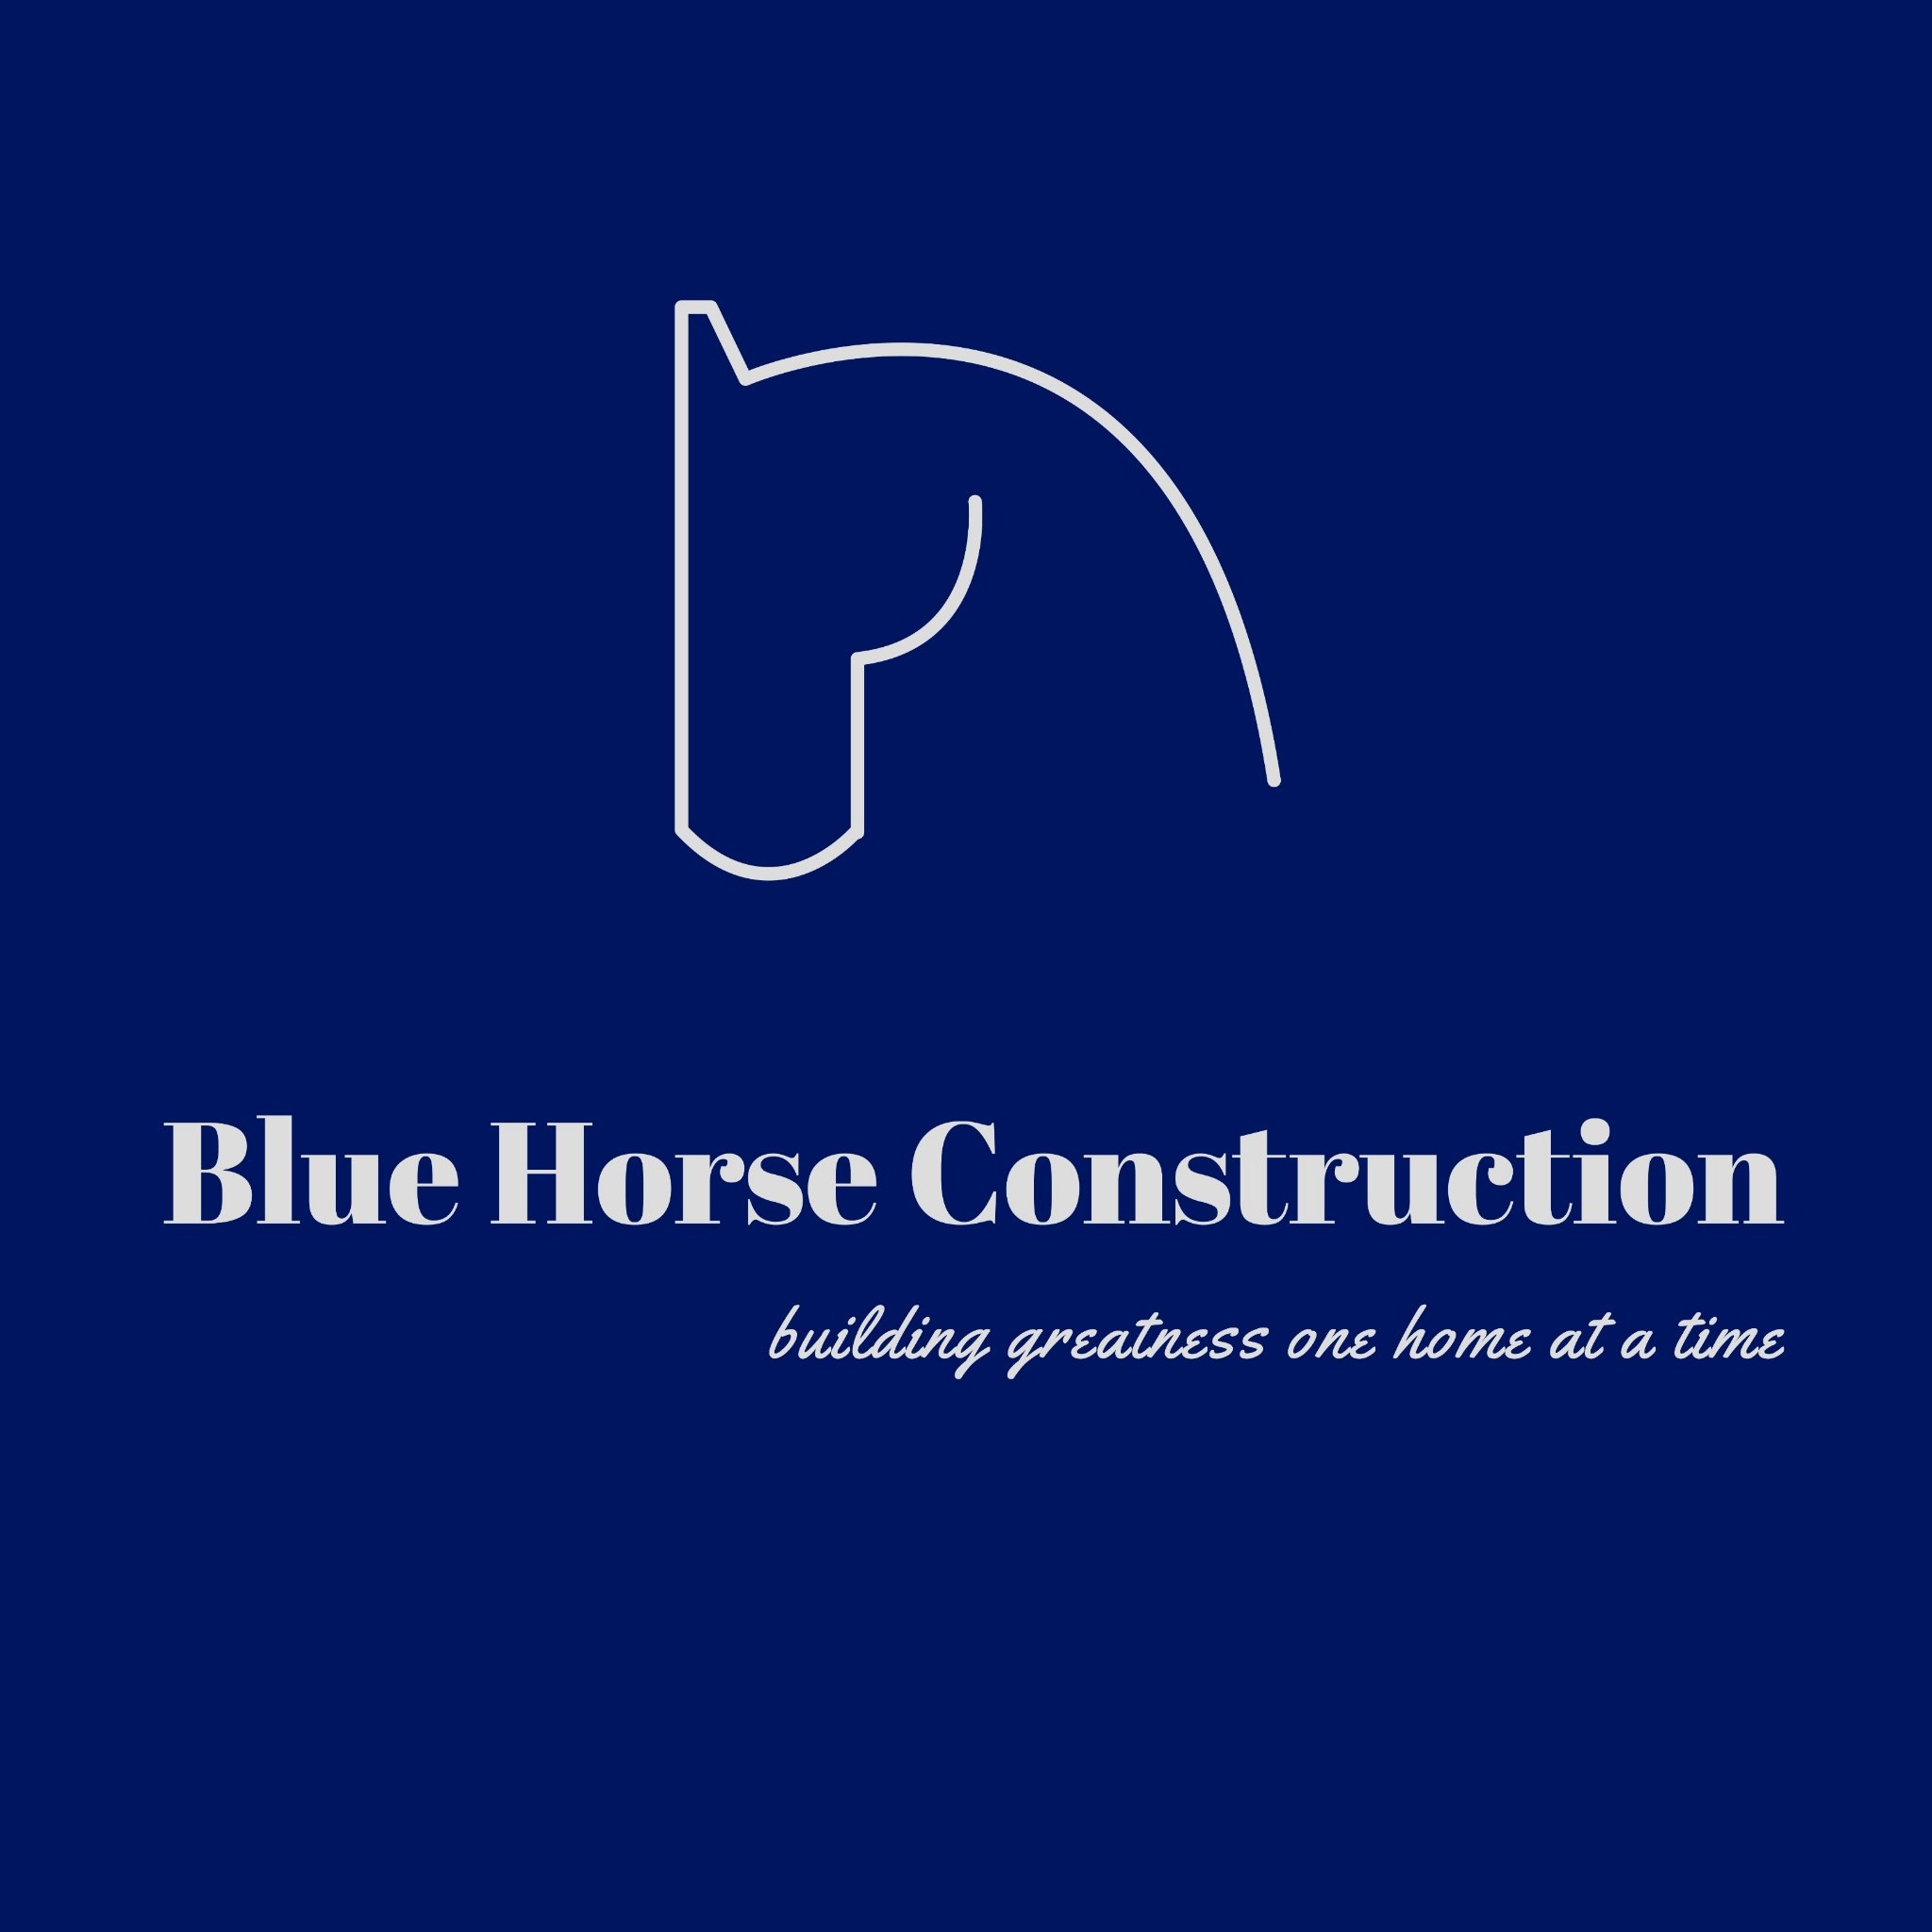 Blue Horse Construction At Bluehorseconst1 Twitter